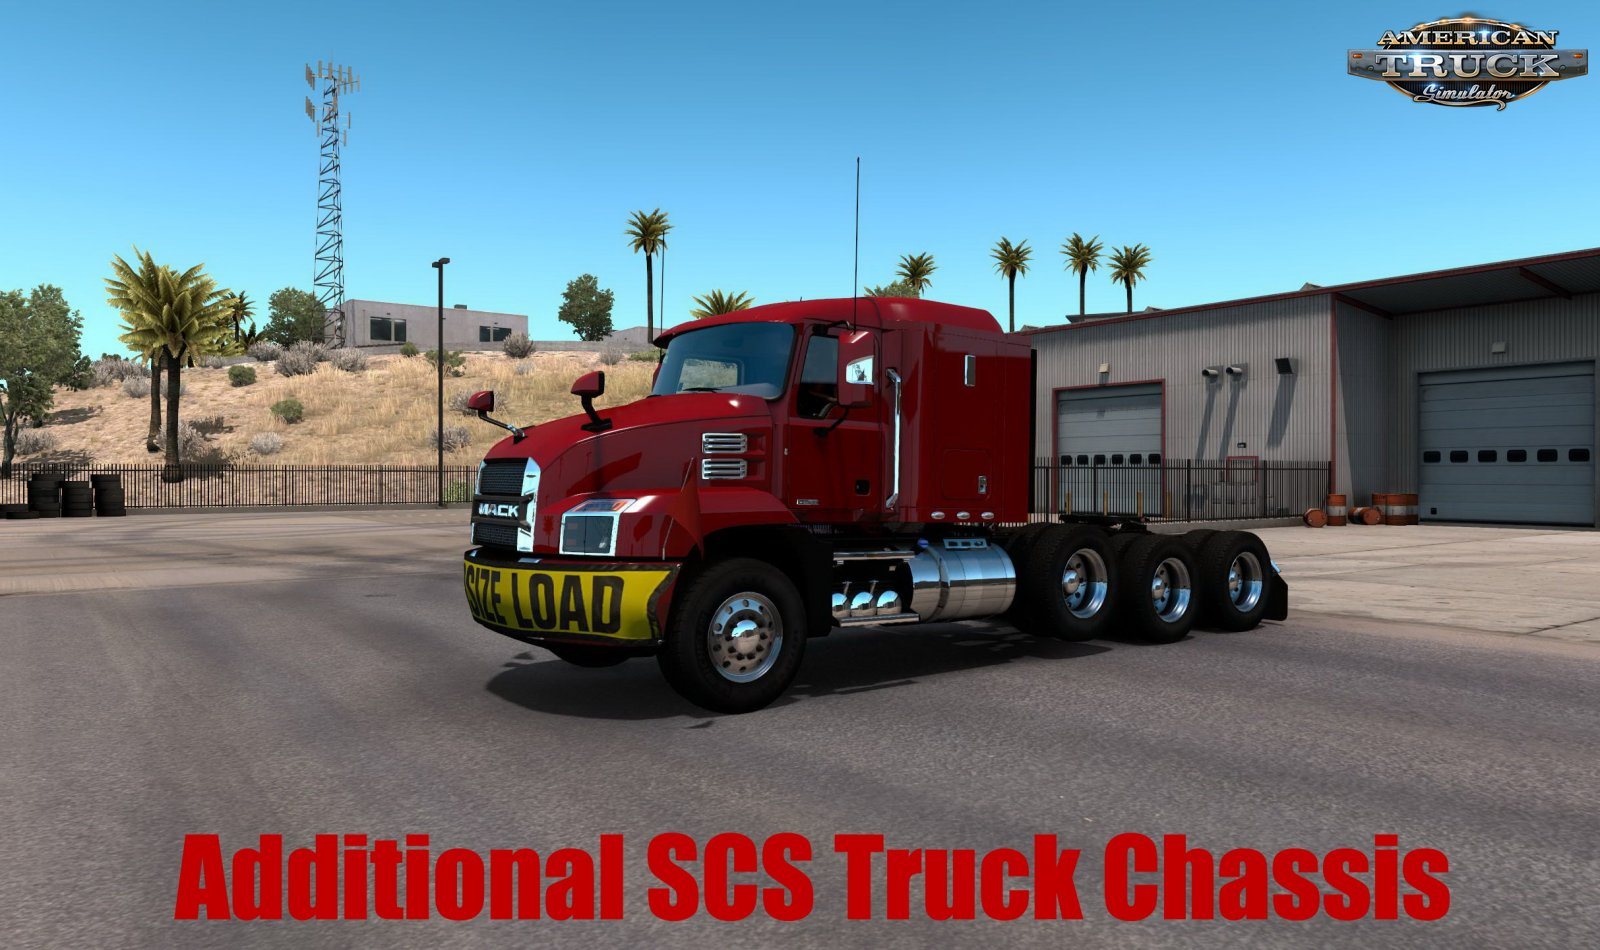 Additional SCS Truck Chassis v1.0 (1.38.x) for ATS